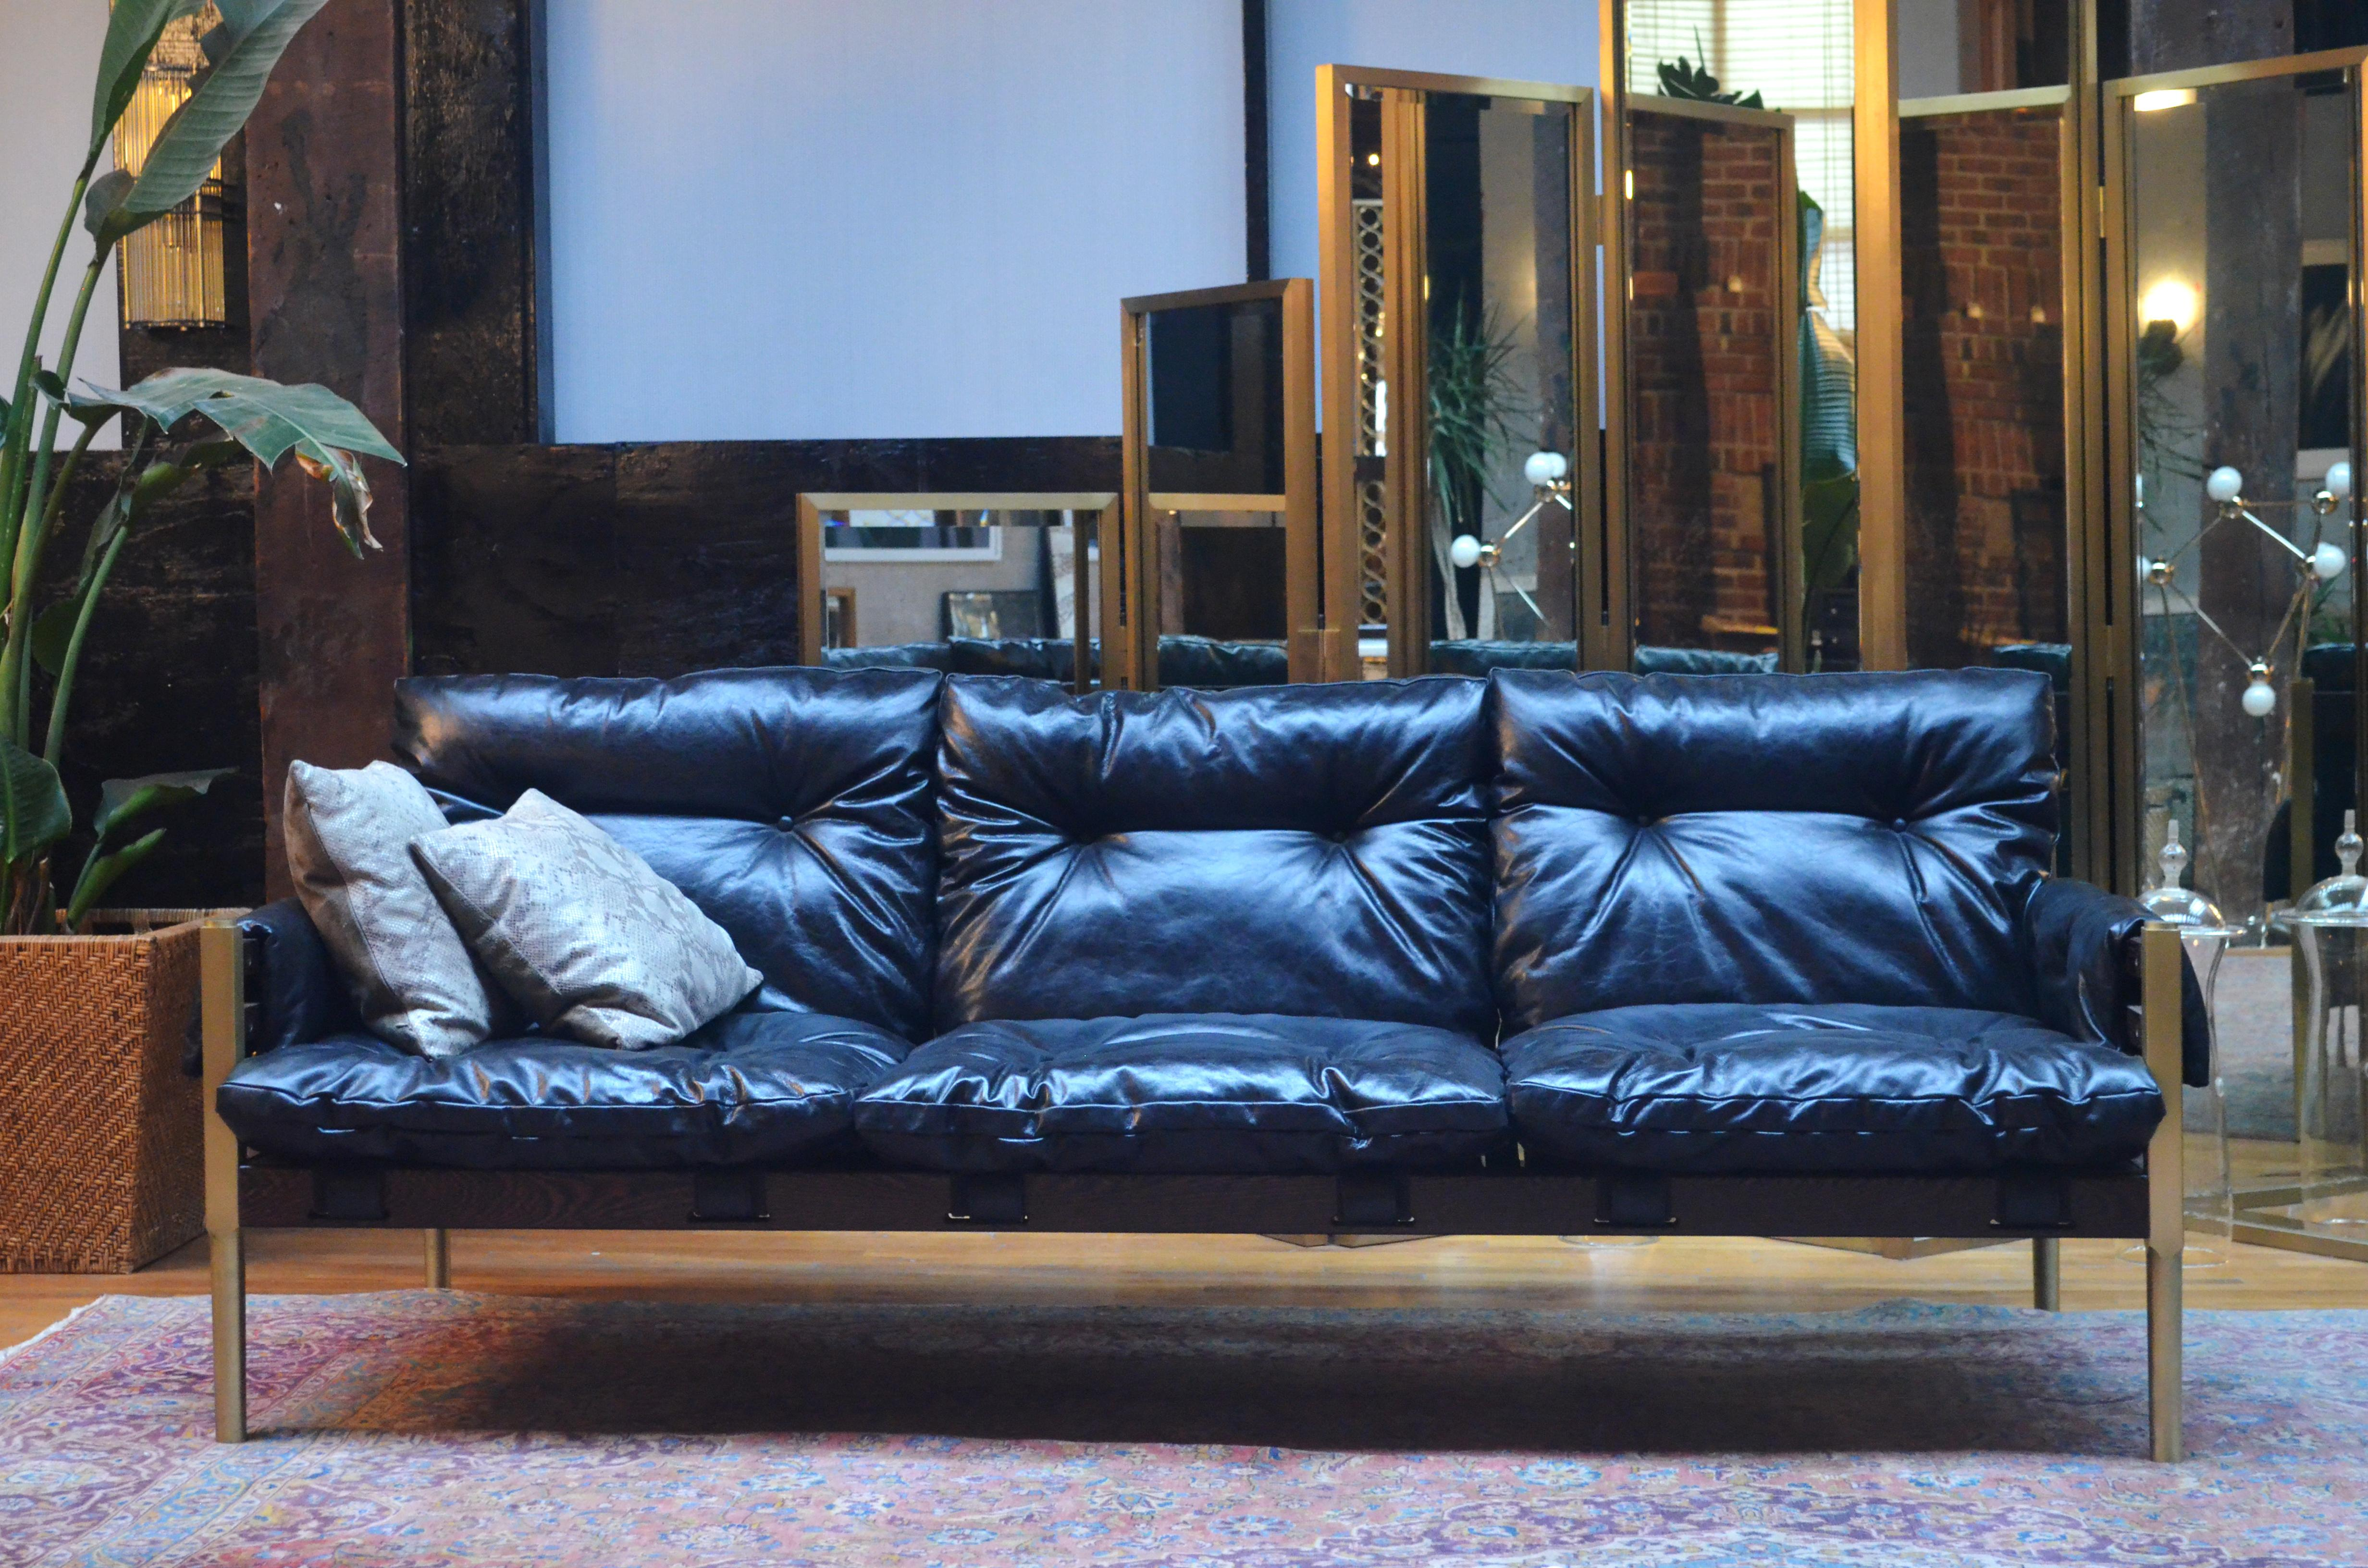 Exceptionnel Campanha Sofa With Tufted Leather Brass Legs U0026 Wooden Frame Campaign Style  Couch